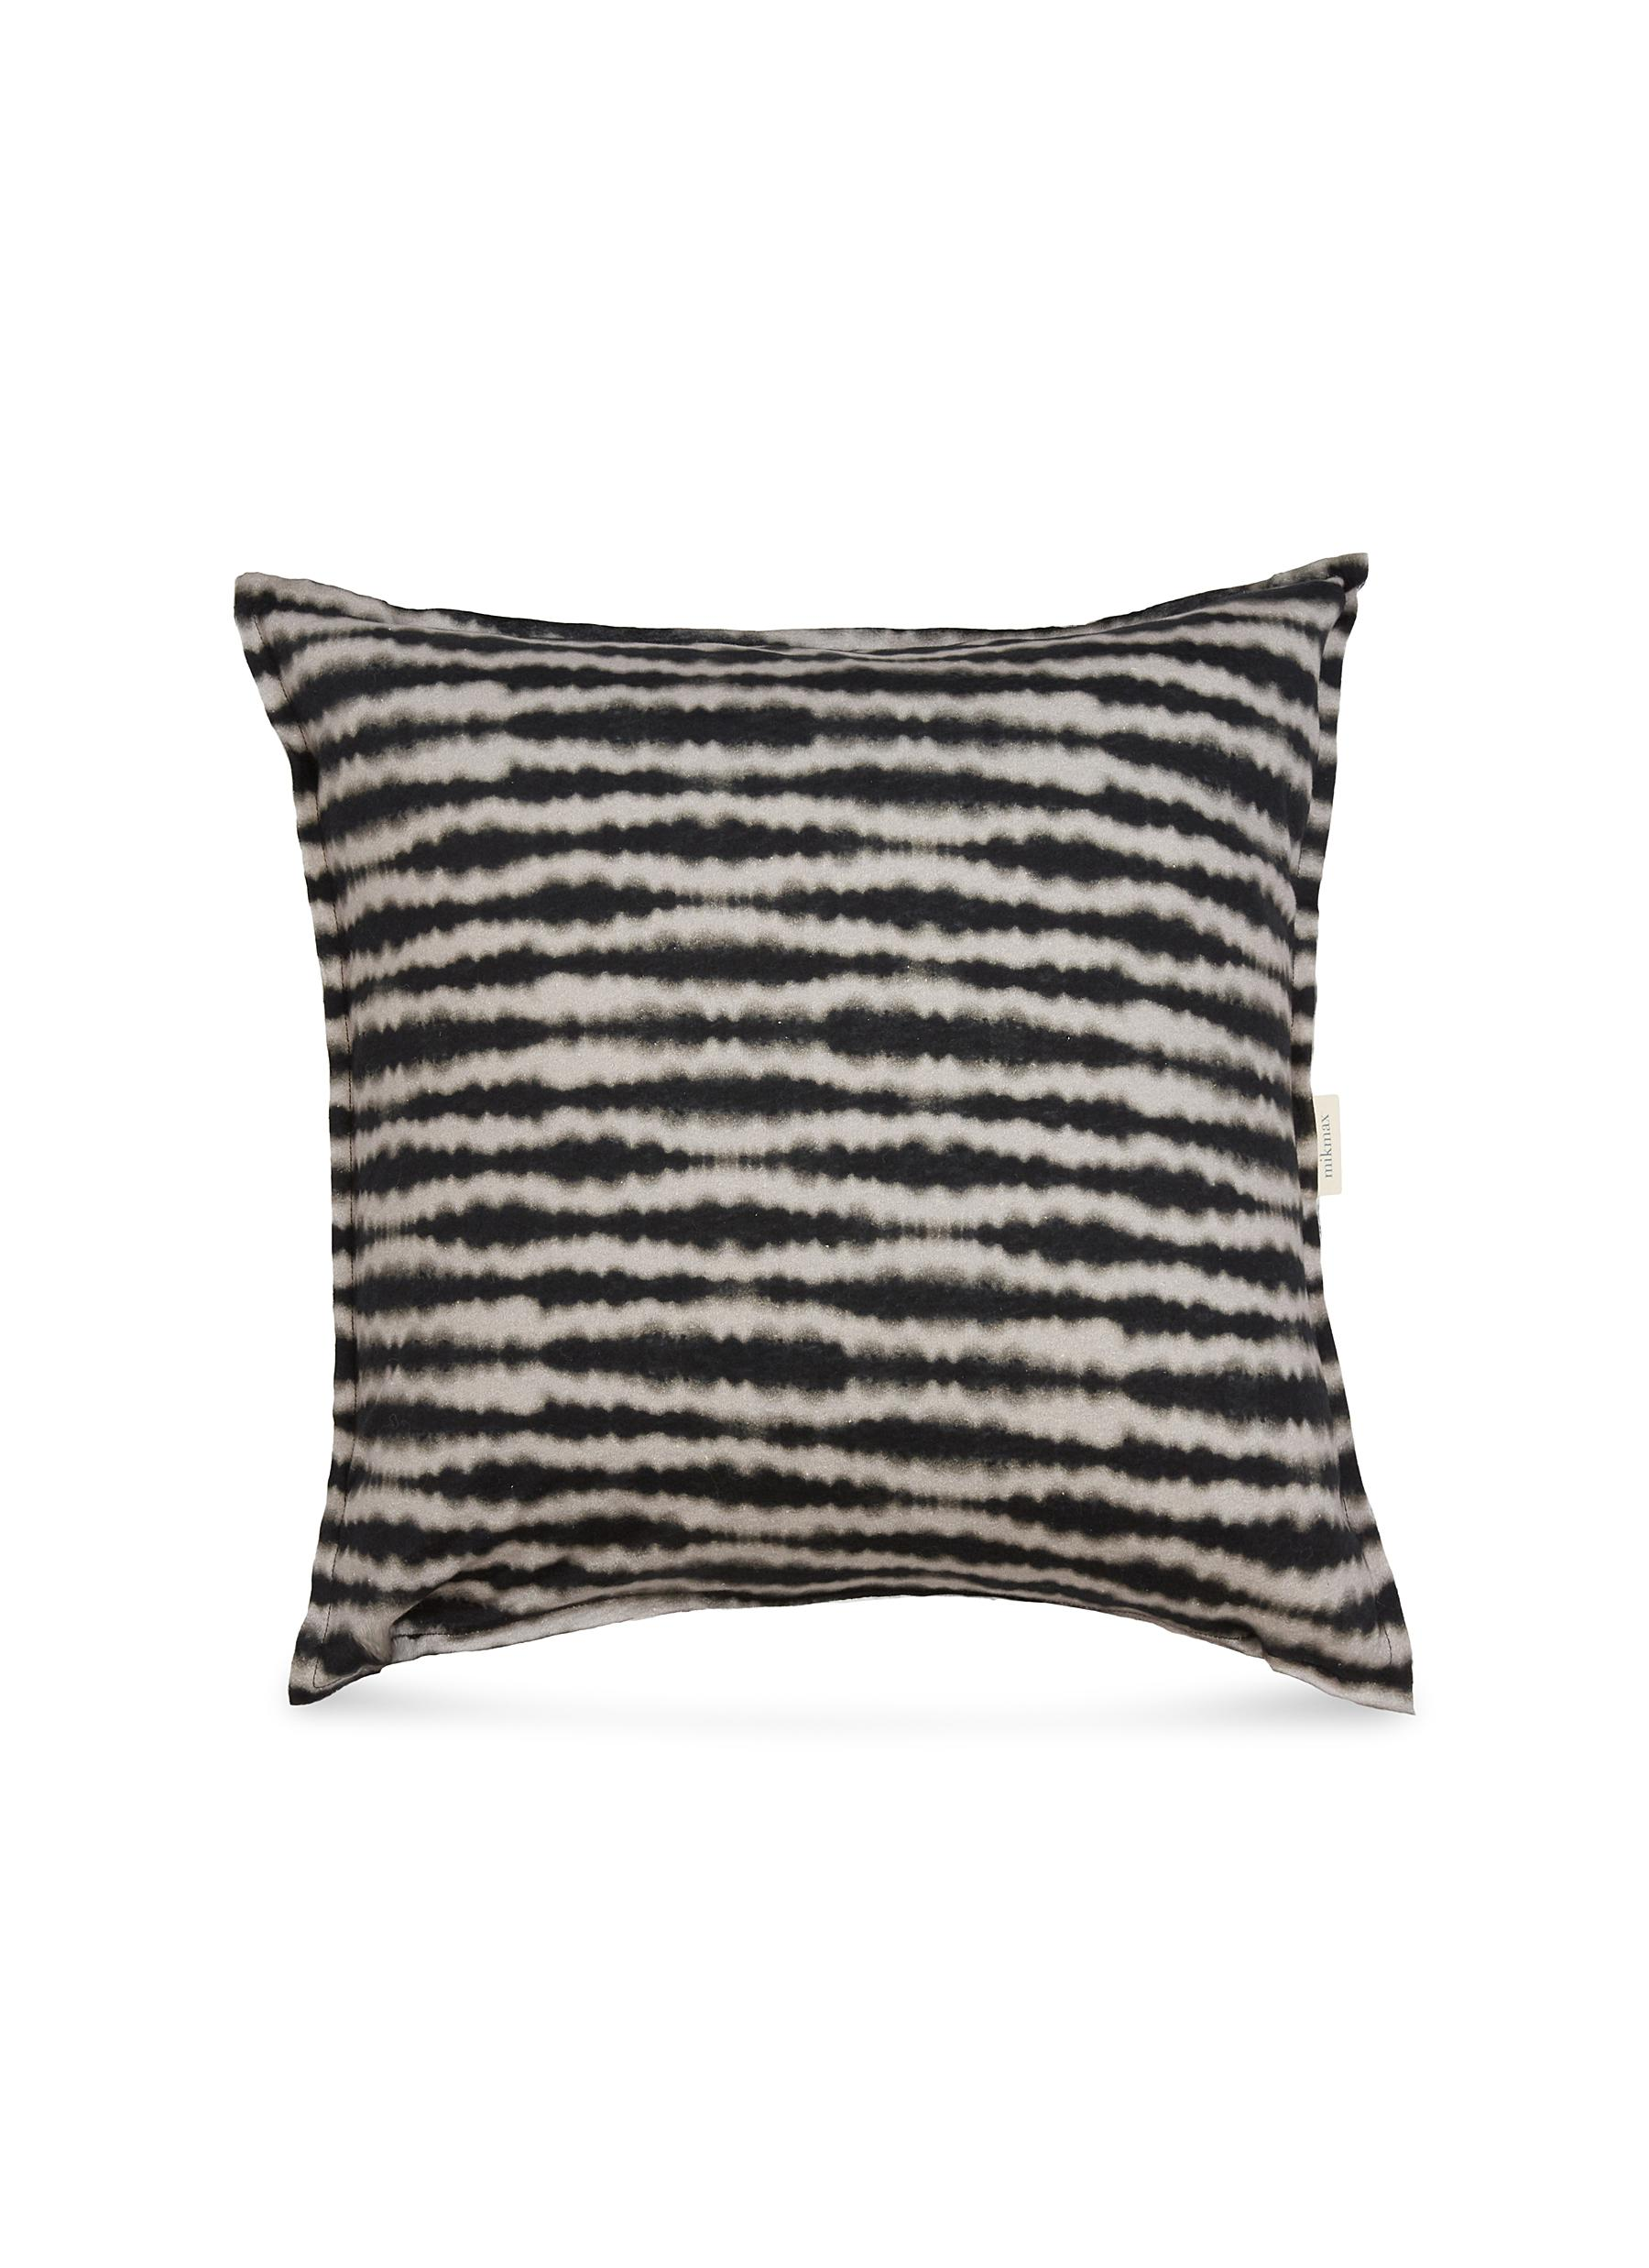 4d9624fbb752 Main View - Click To Enlarge - MIKMAX - Tie-dye stripe cotton jersey cushion